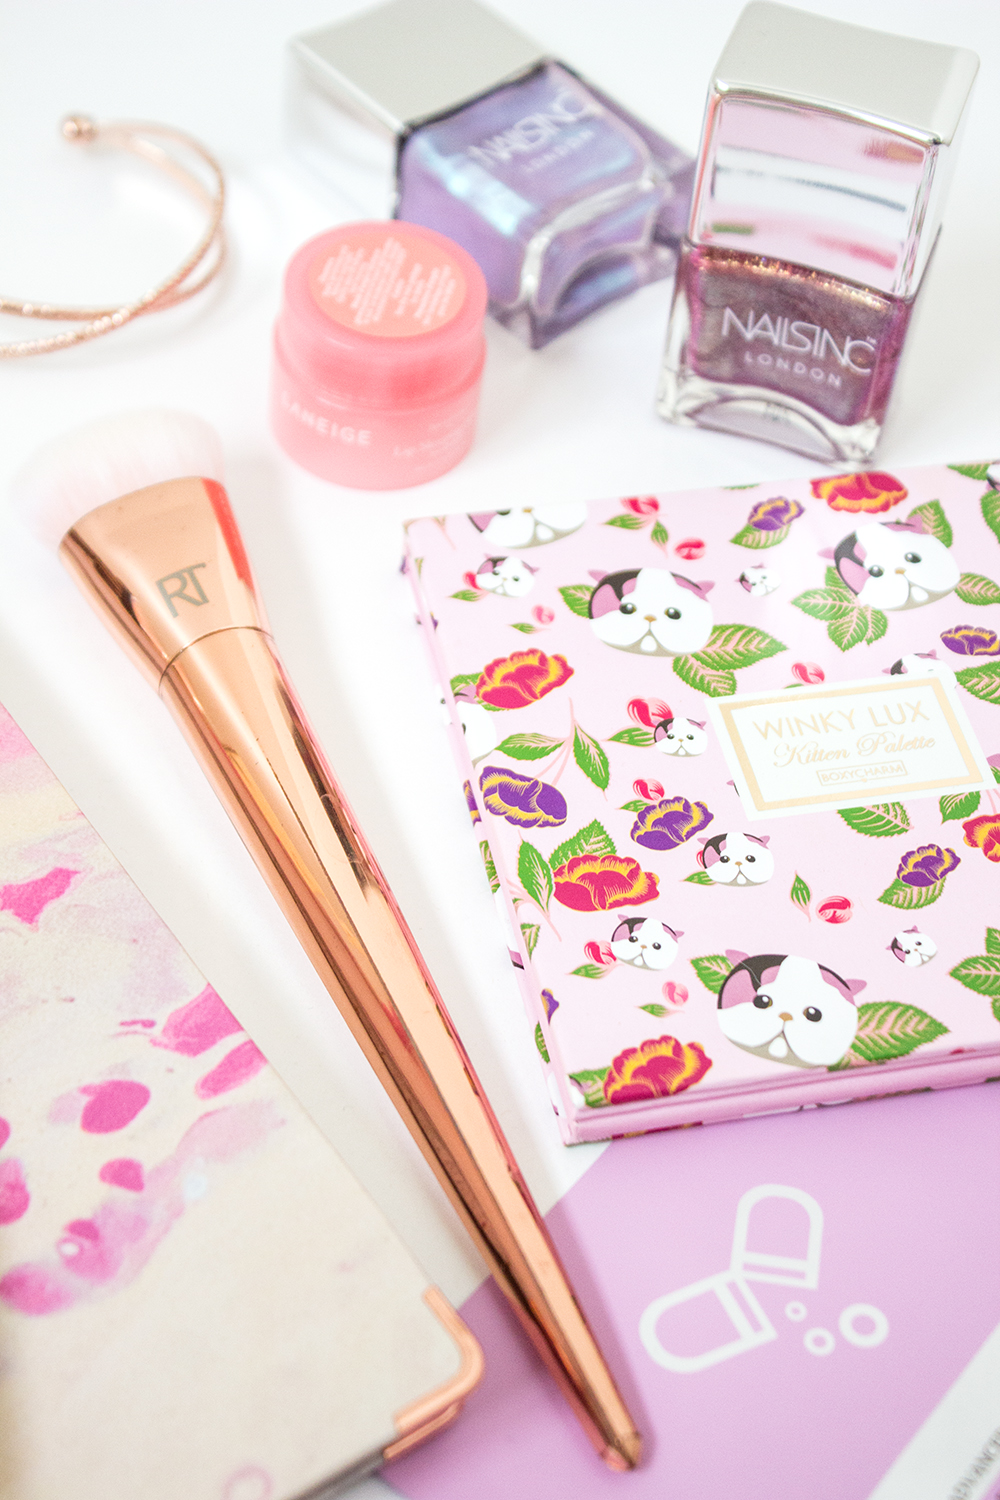 The Ultimate Girly Gift Guide